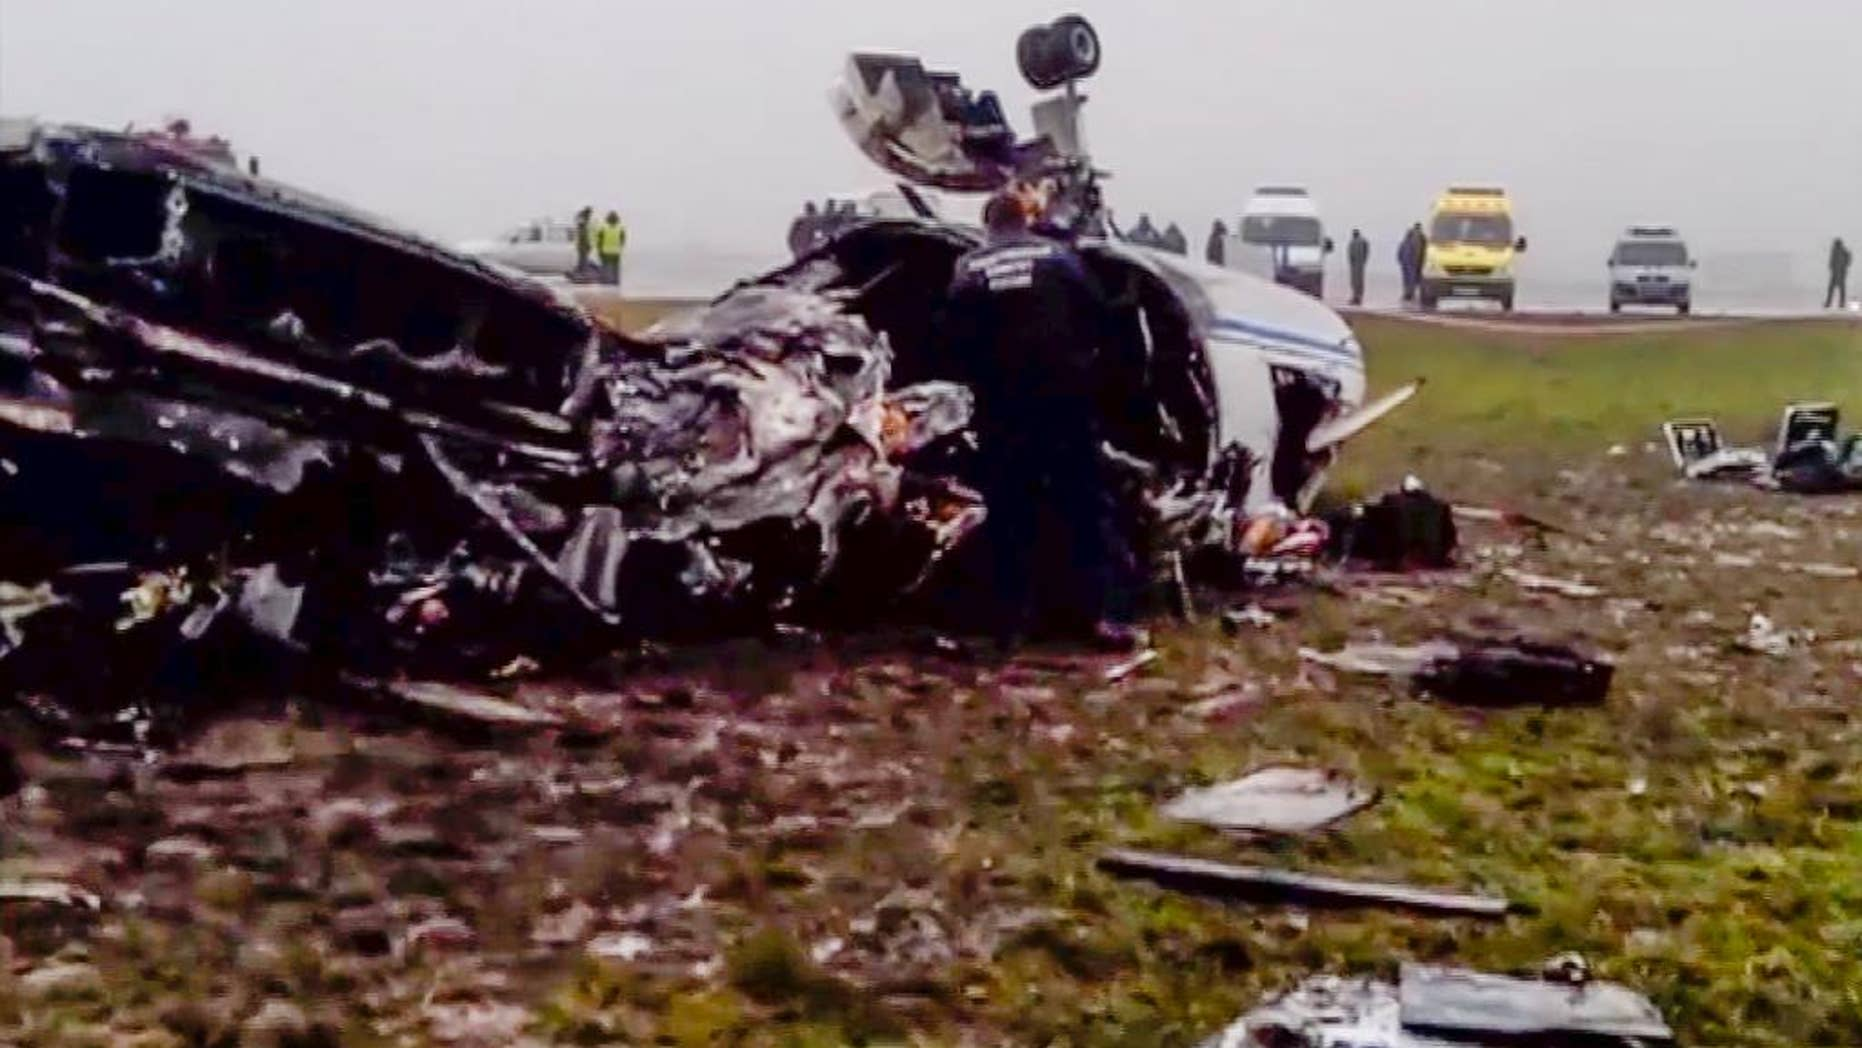 In this image made from video provided by Russian State Television Rossiya, investigators works at the wreckage of a private jet which collided with a snowplow at Vnukovo airport in Moscow, Tuesday, Oct. 21, 2014. The head of French oil giant Total SA and three French crew members were killed at Vnukovo airport when a corporate jet, the French-made Dassault Falcon 50, collided with a snowplow, Russian investigators said Tuesday. (AP Photo) TV OUT